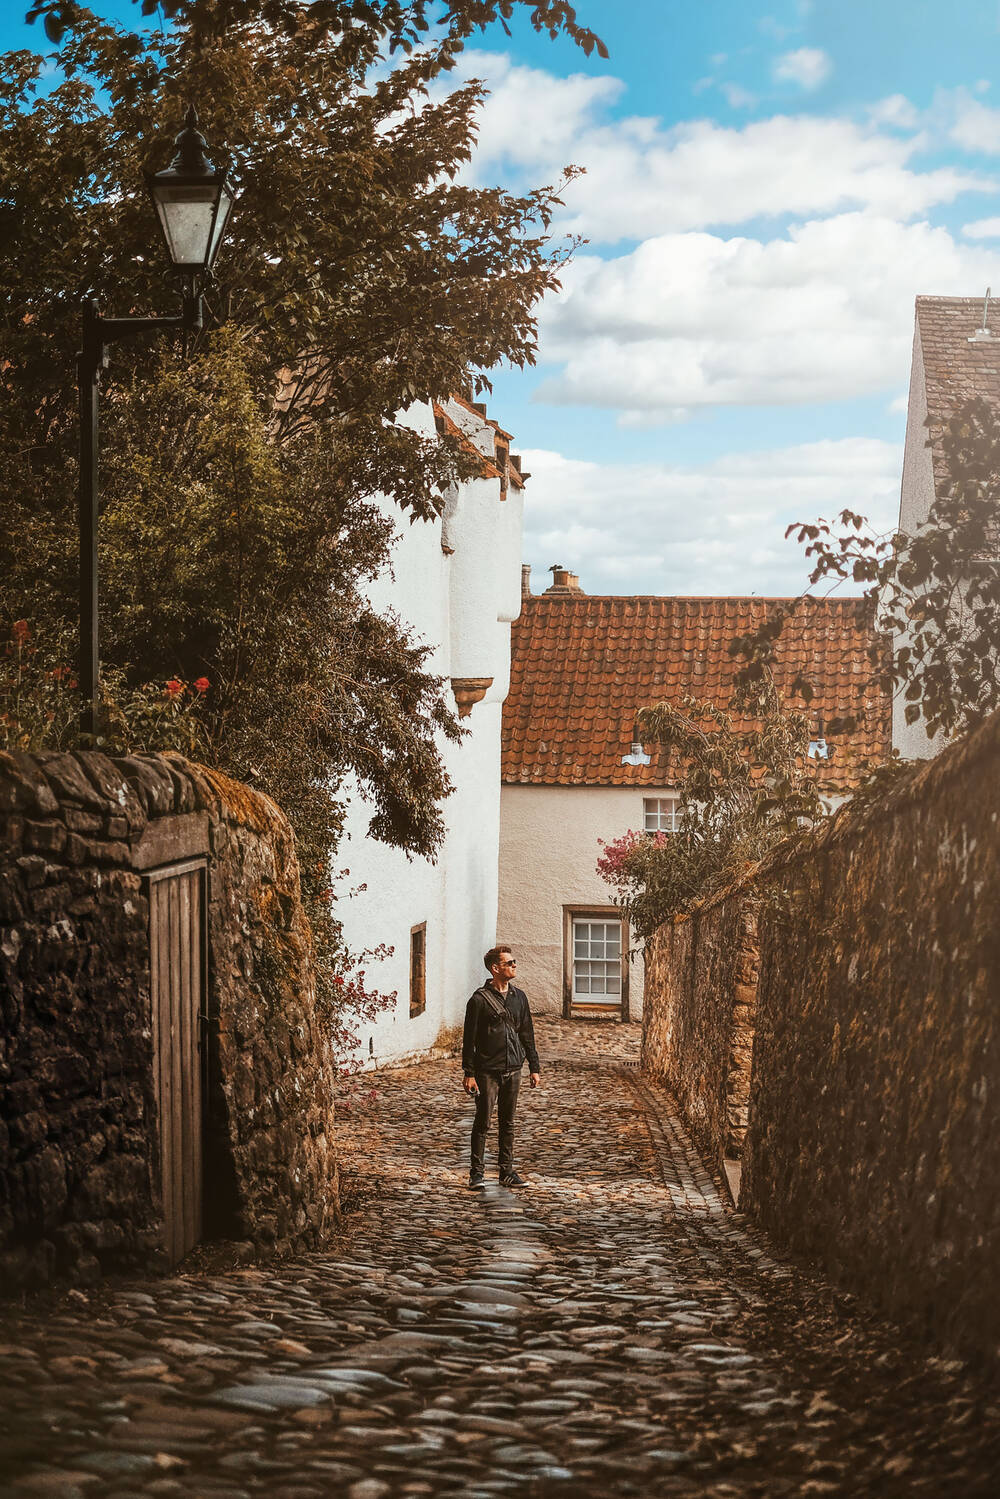 Cobbled streets of Culross